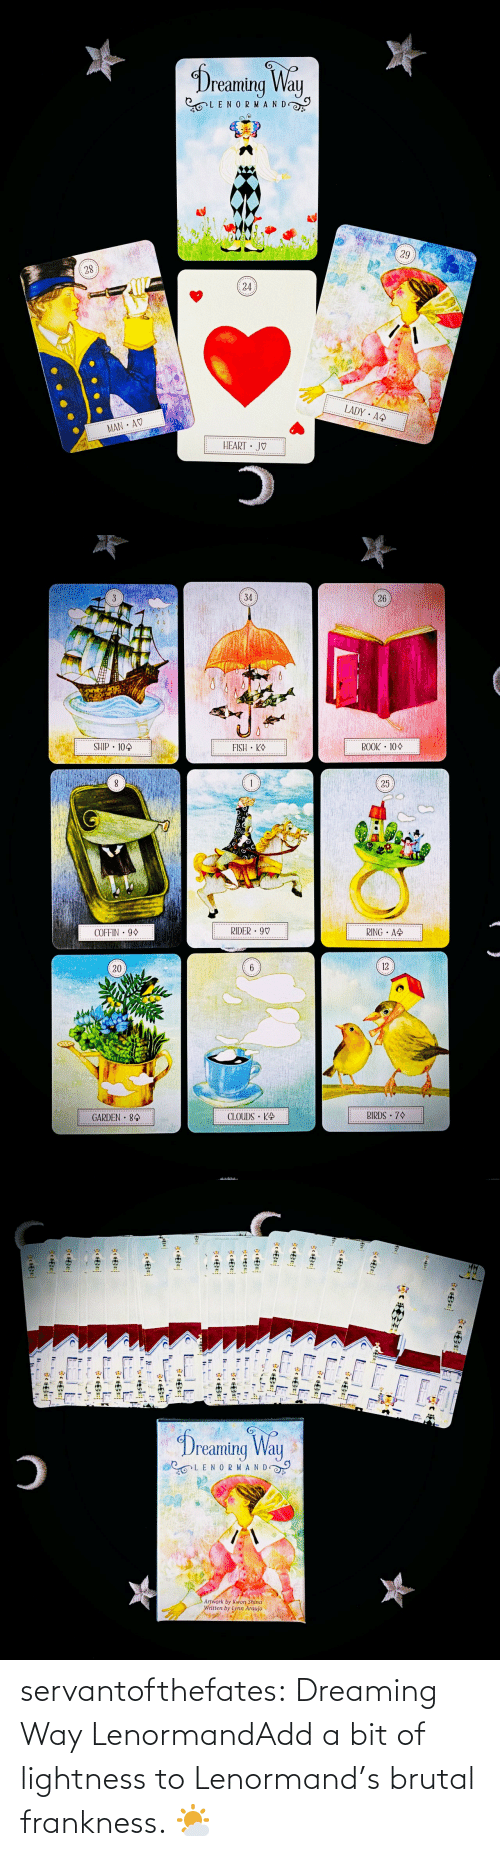 Do You Have: servantofthefates:  Dreaming Way LenormandAdd a bit of lightness to Lenormand's brutal frankness. 🌤